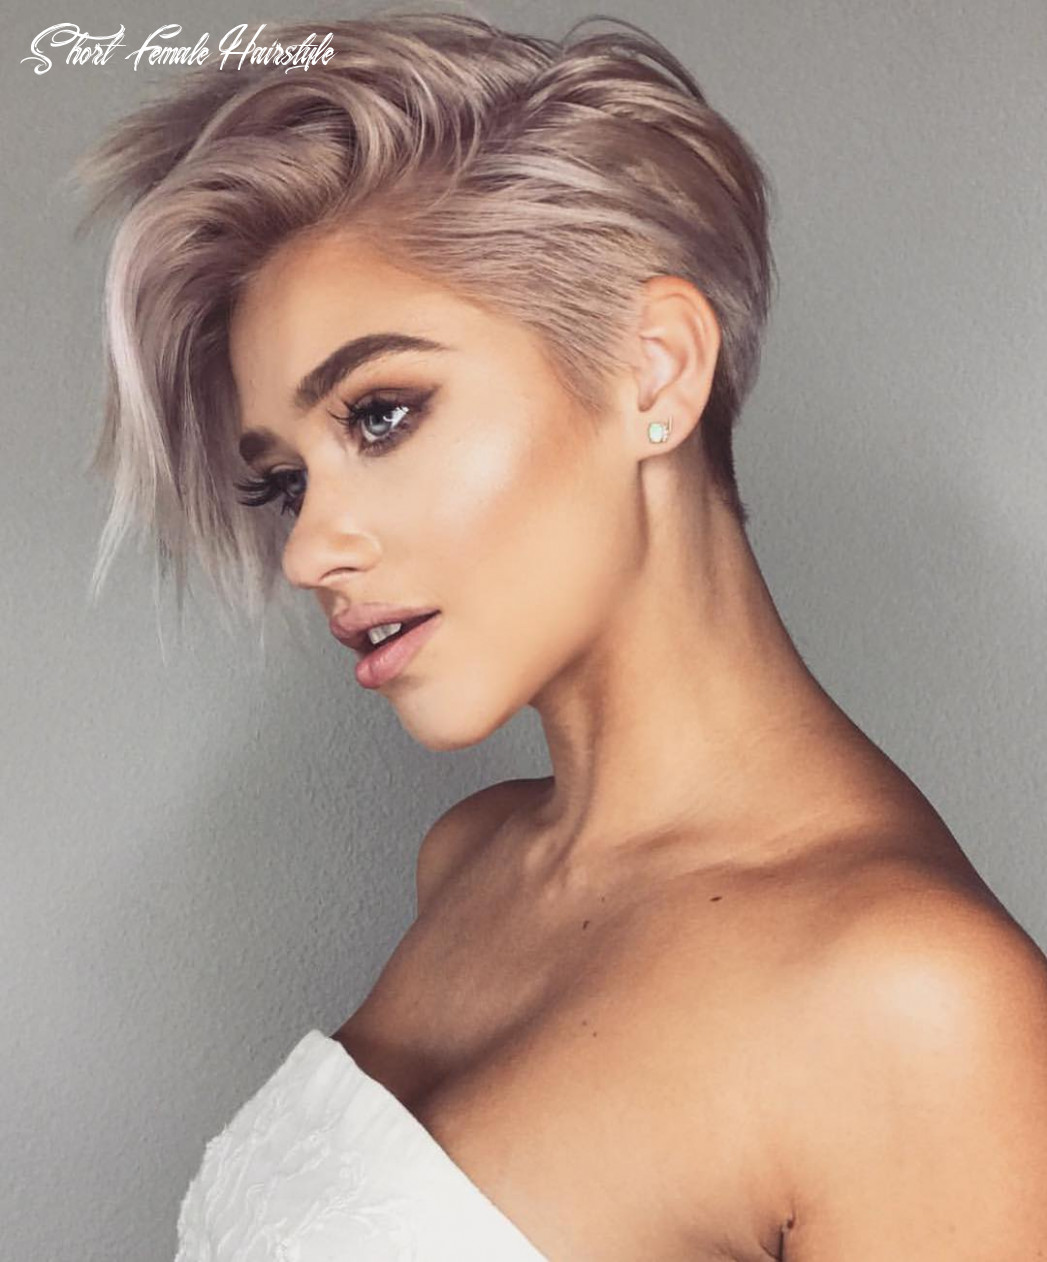 10 trendy very short haircuts for female, cool short hair styles 10 short female hairstyle